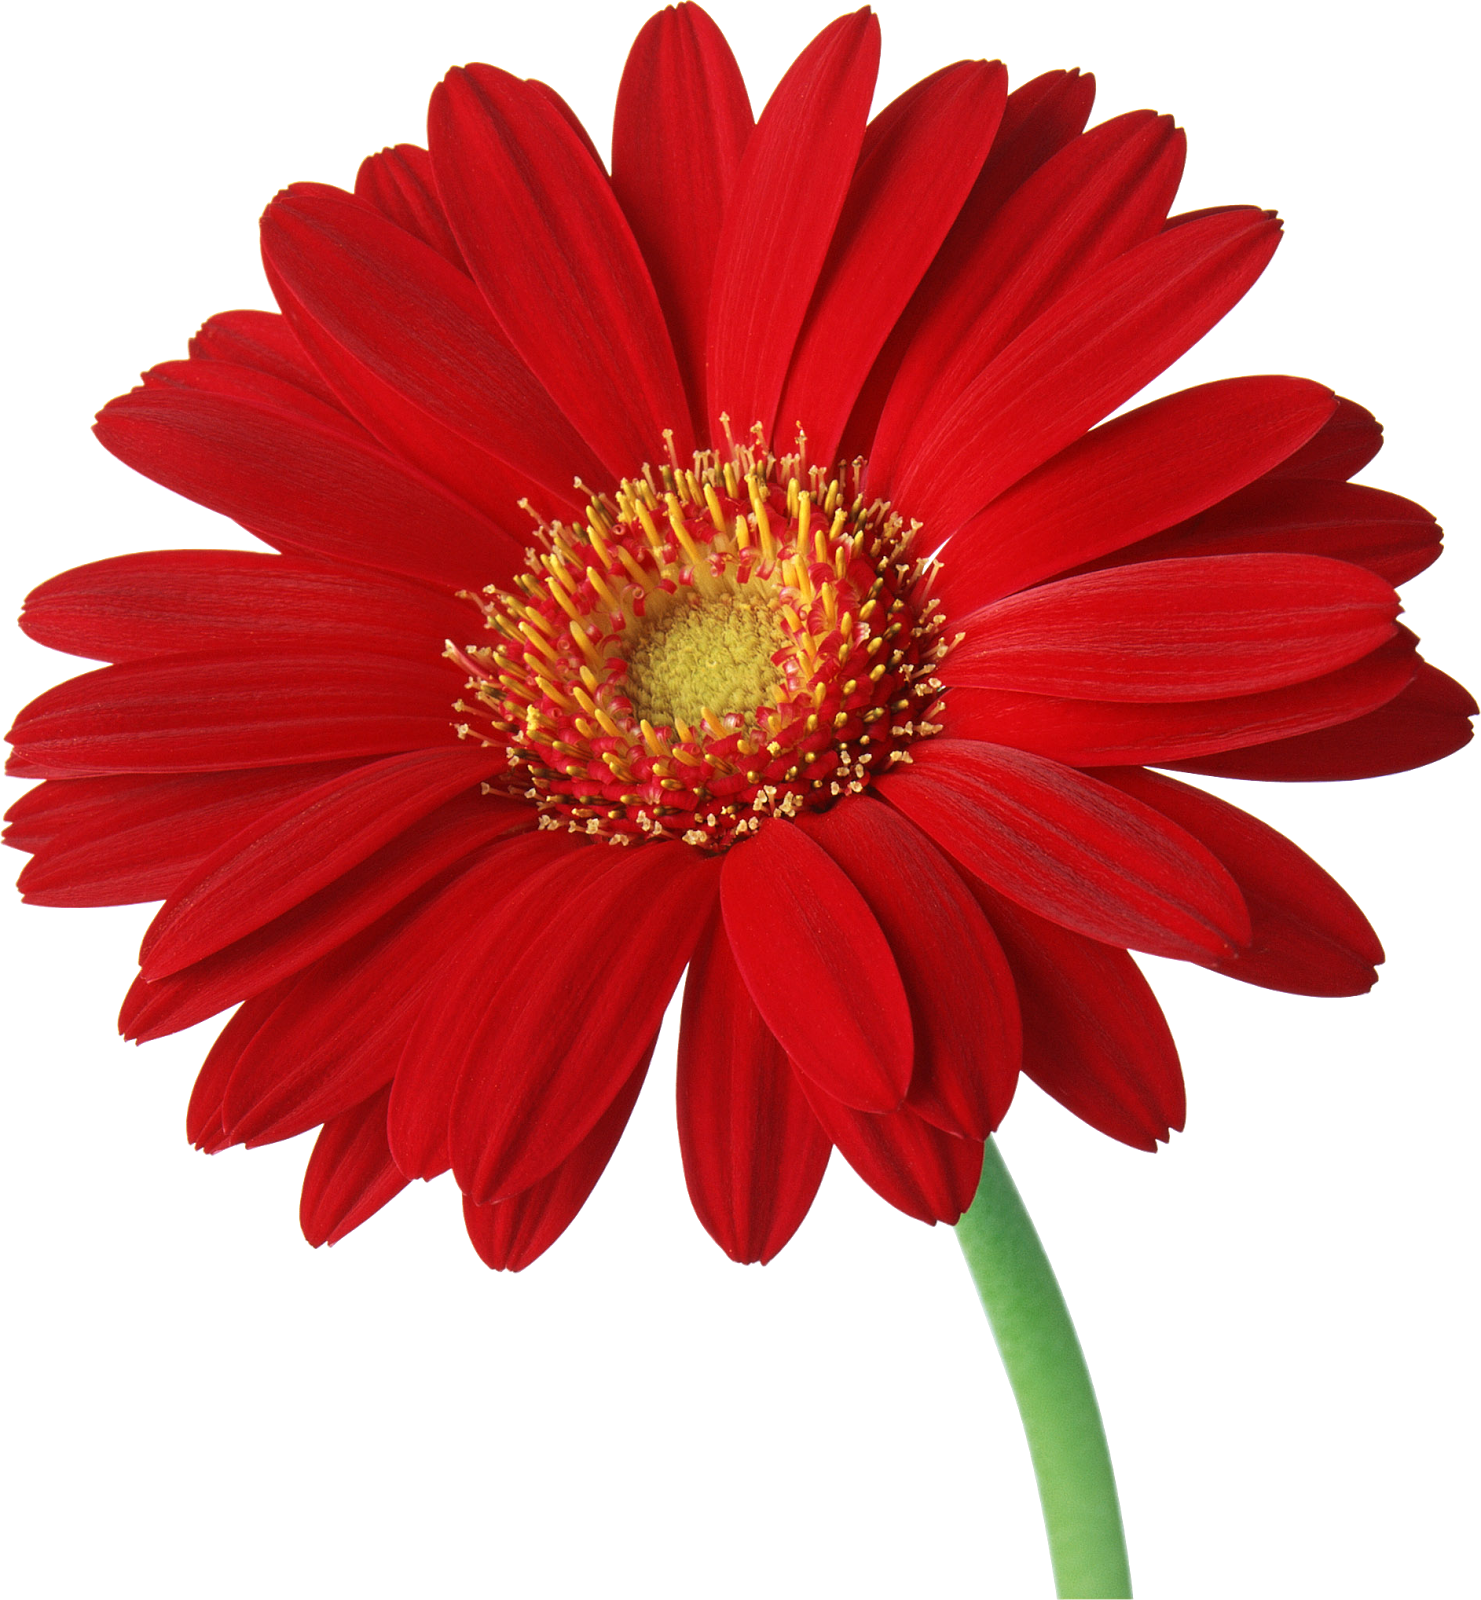 red daisy flower hd - photo #25